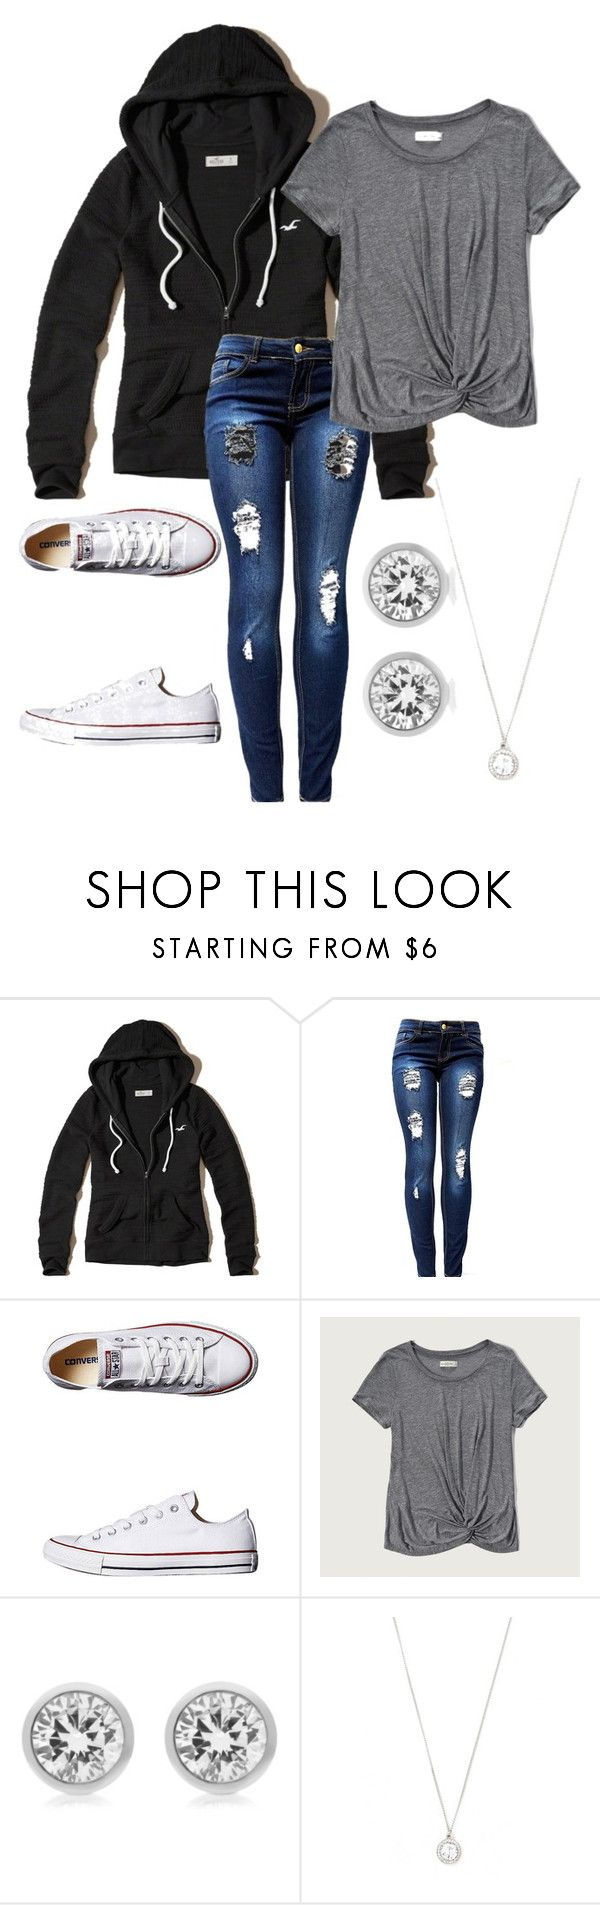 """3/31/2017"" by softball100 on Polyvore featuring Hollister Co., Converse, Abercrombie & Fitch, Michael Kors and Forever 21"